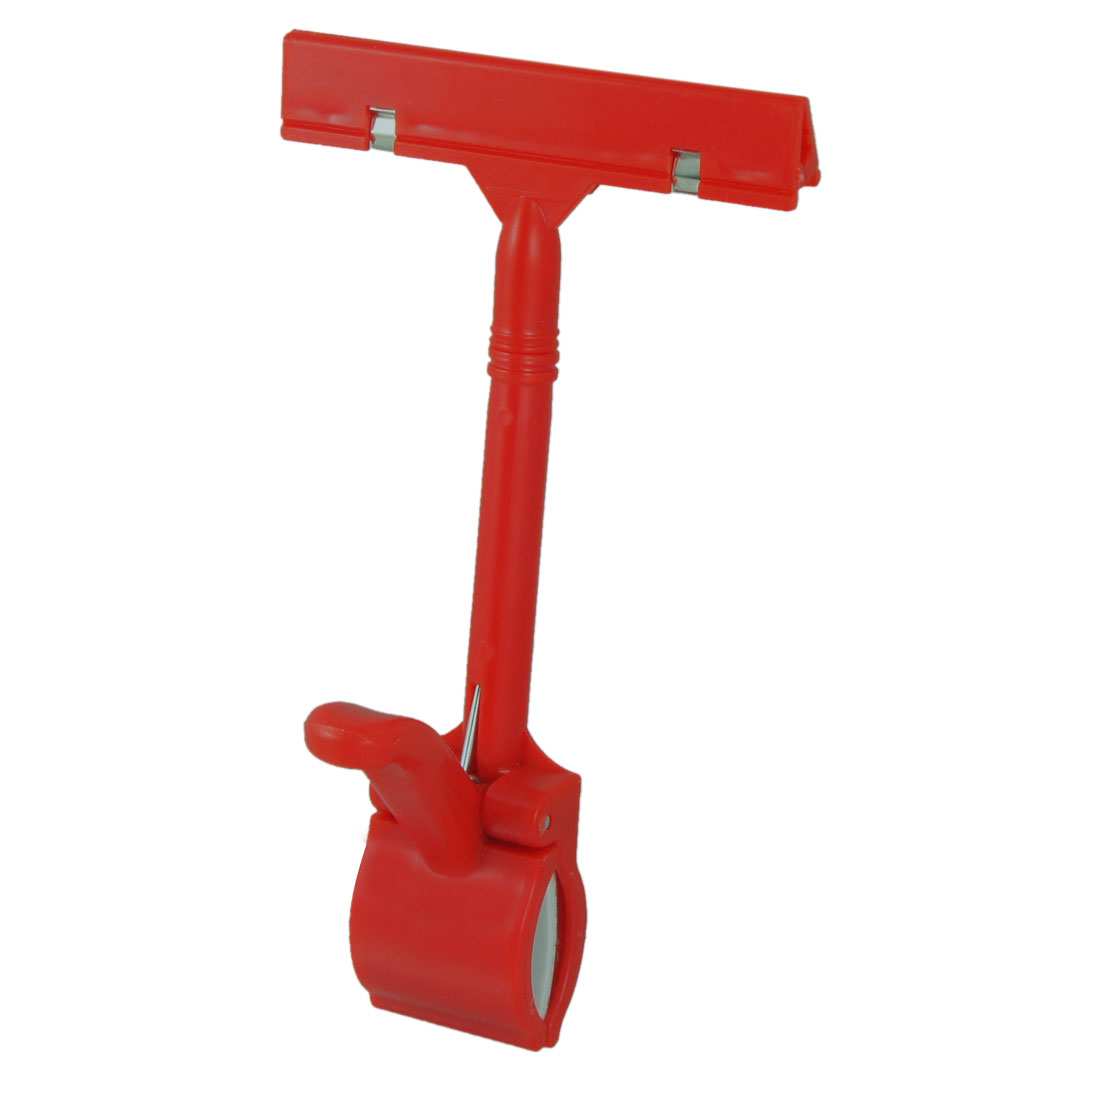 Retail Store Pop Sign Card Rotatable Plastic Advertising Clip Red